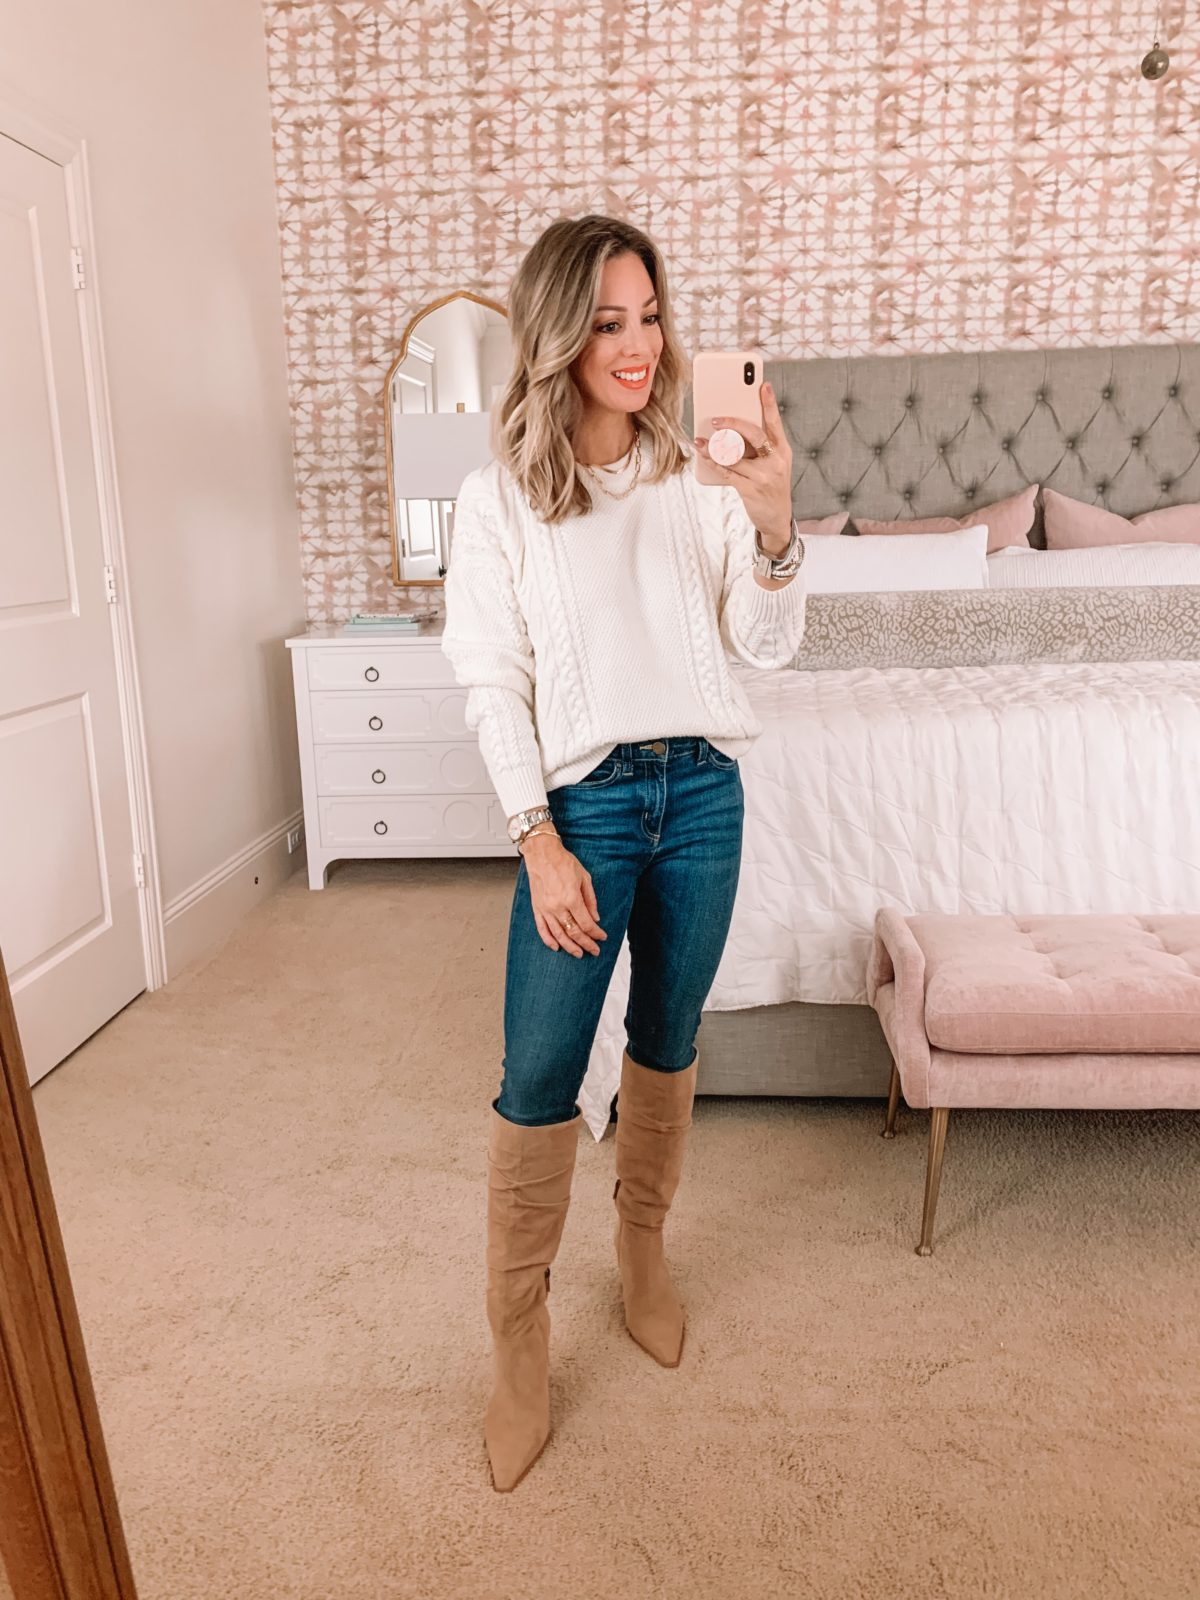 Amazon Fashion Faves, Cable knit Sweater, Jeans, Boots